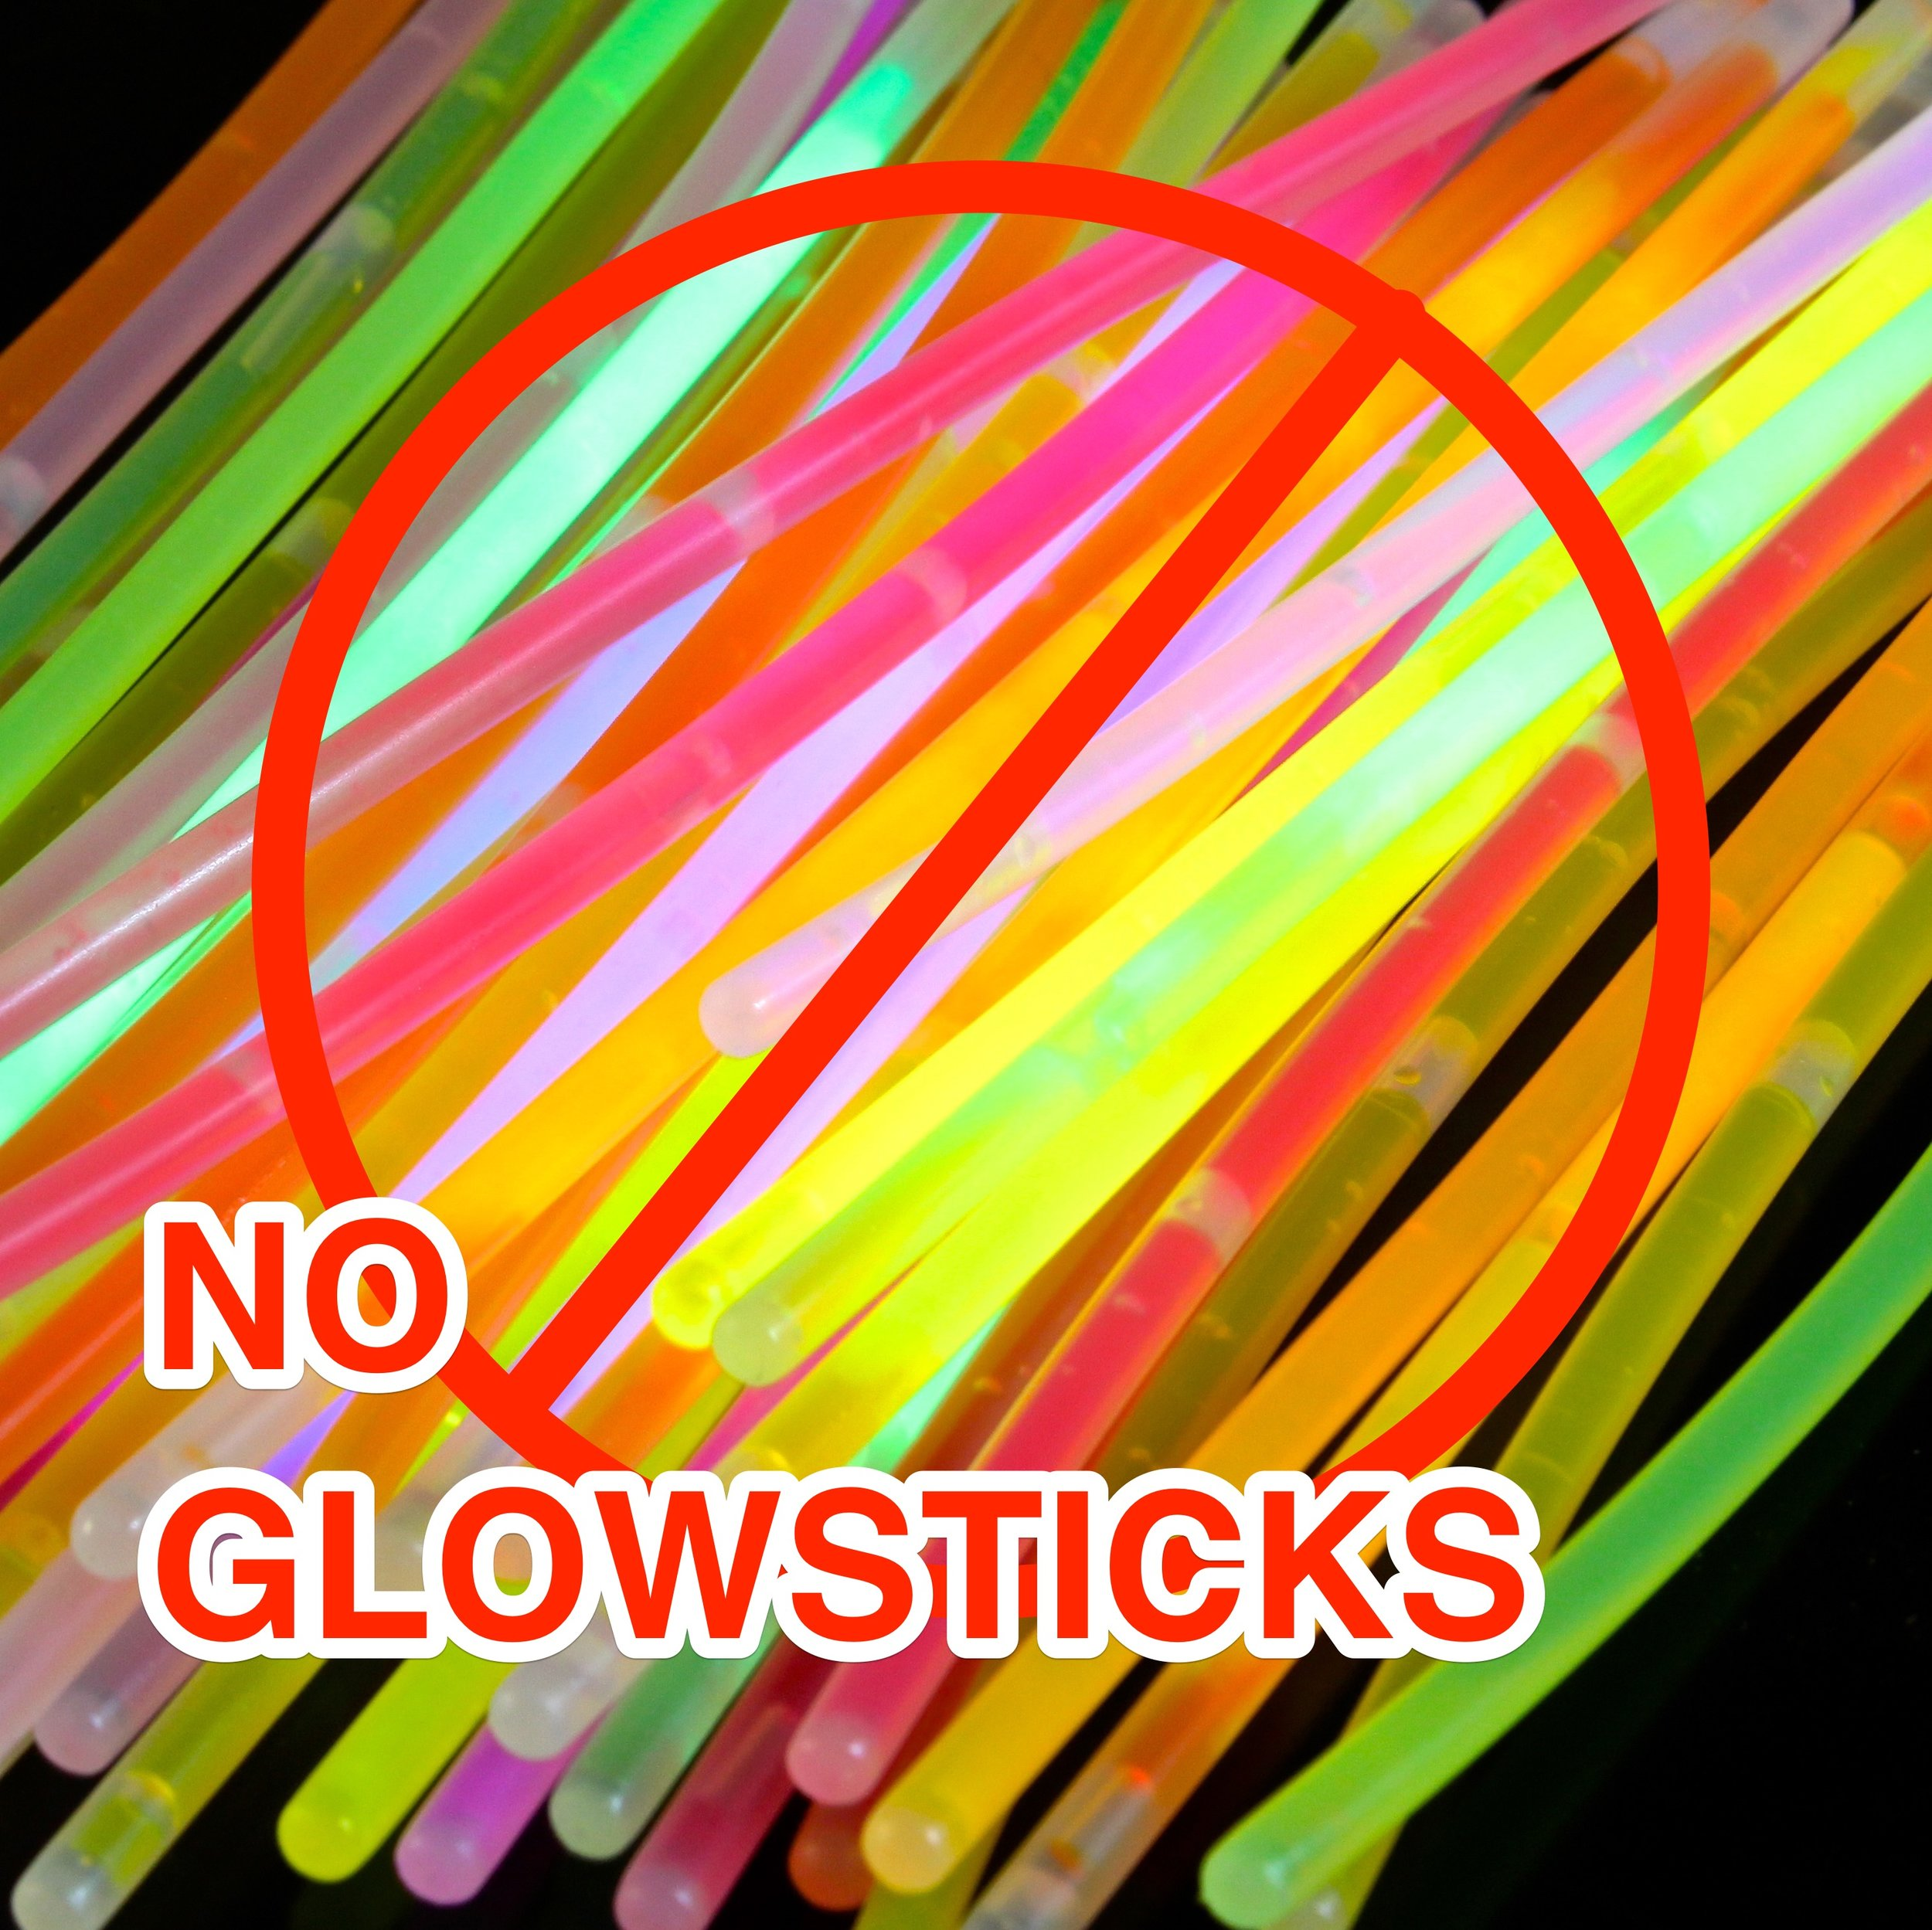 - Please Do Not Use GLOW STICKS. Glow Sticks seem like a good idea, but they often fall off, leaving little bits of plastic and MOOP all over The Playa. Remember to Leave No Trace. There are plenty of other cool alternatives.